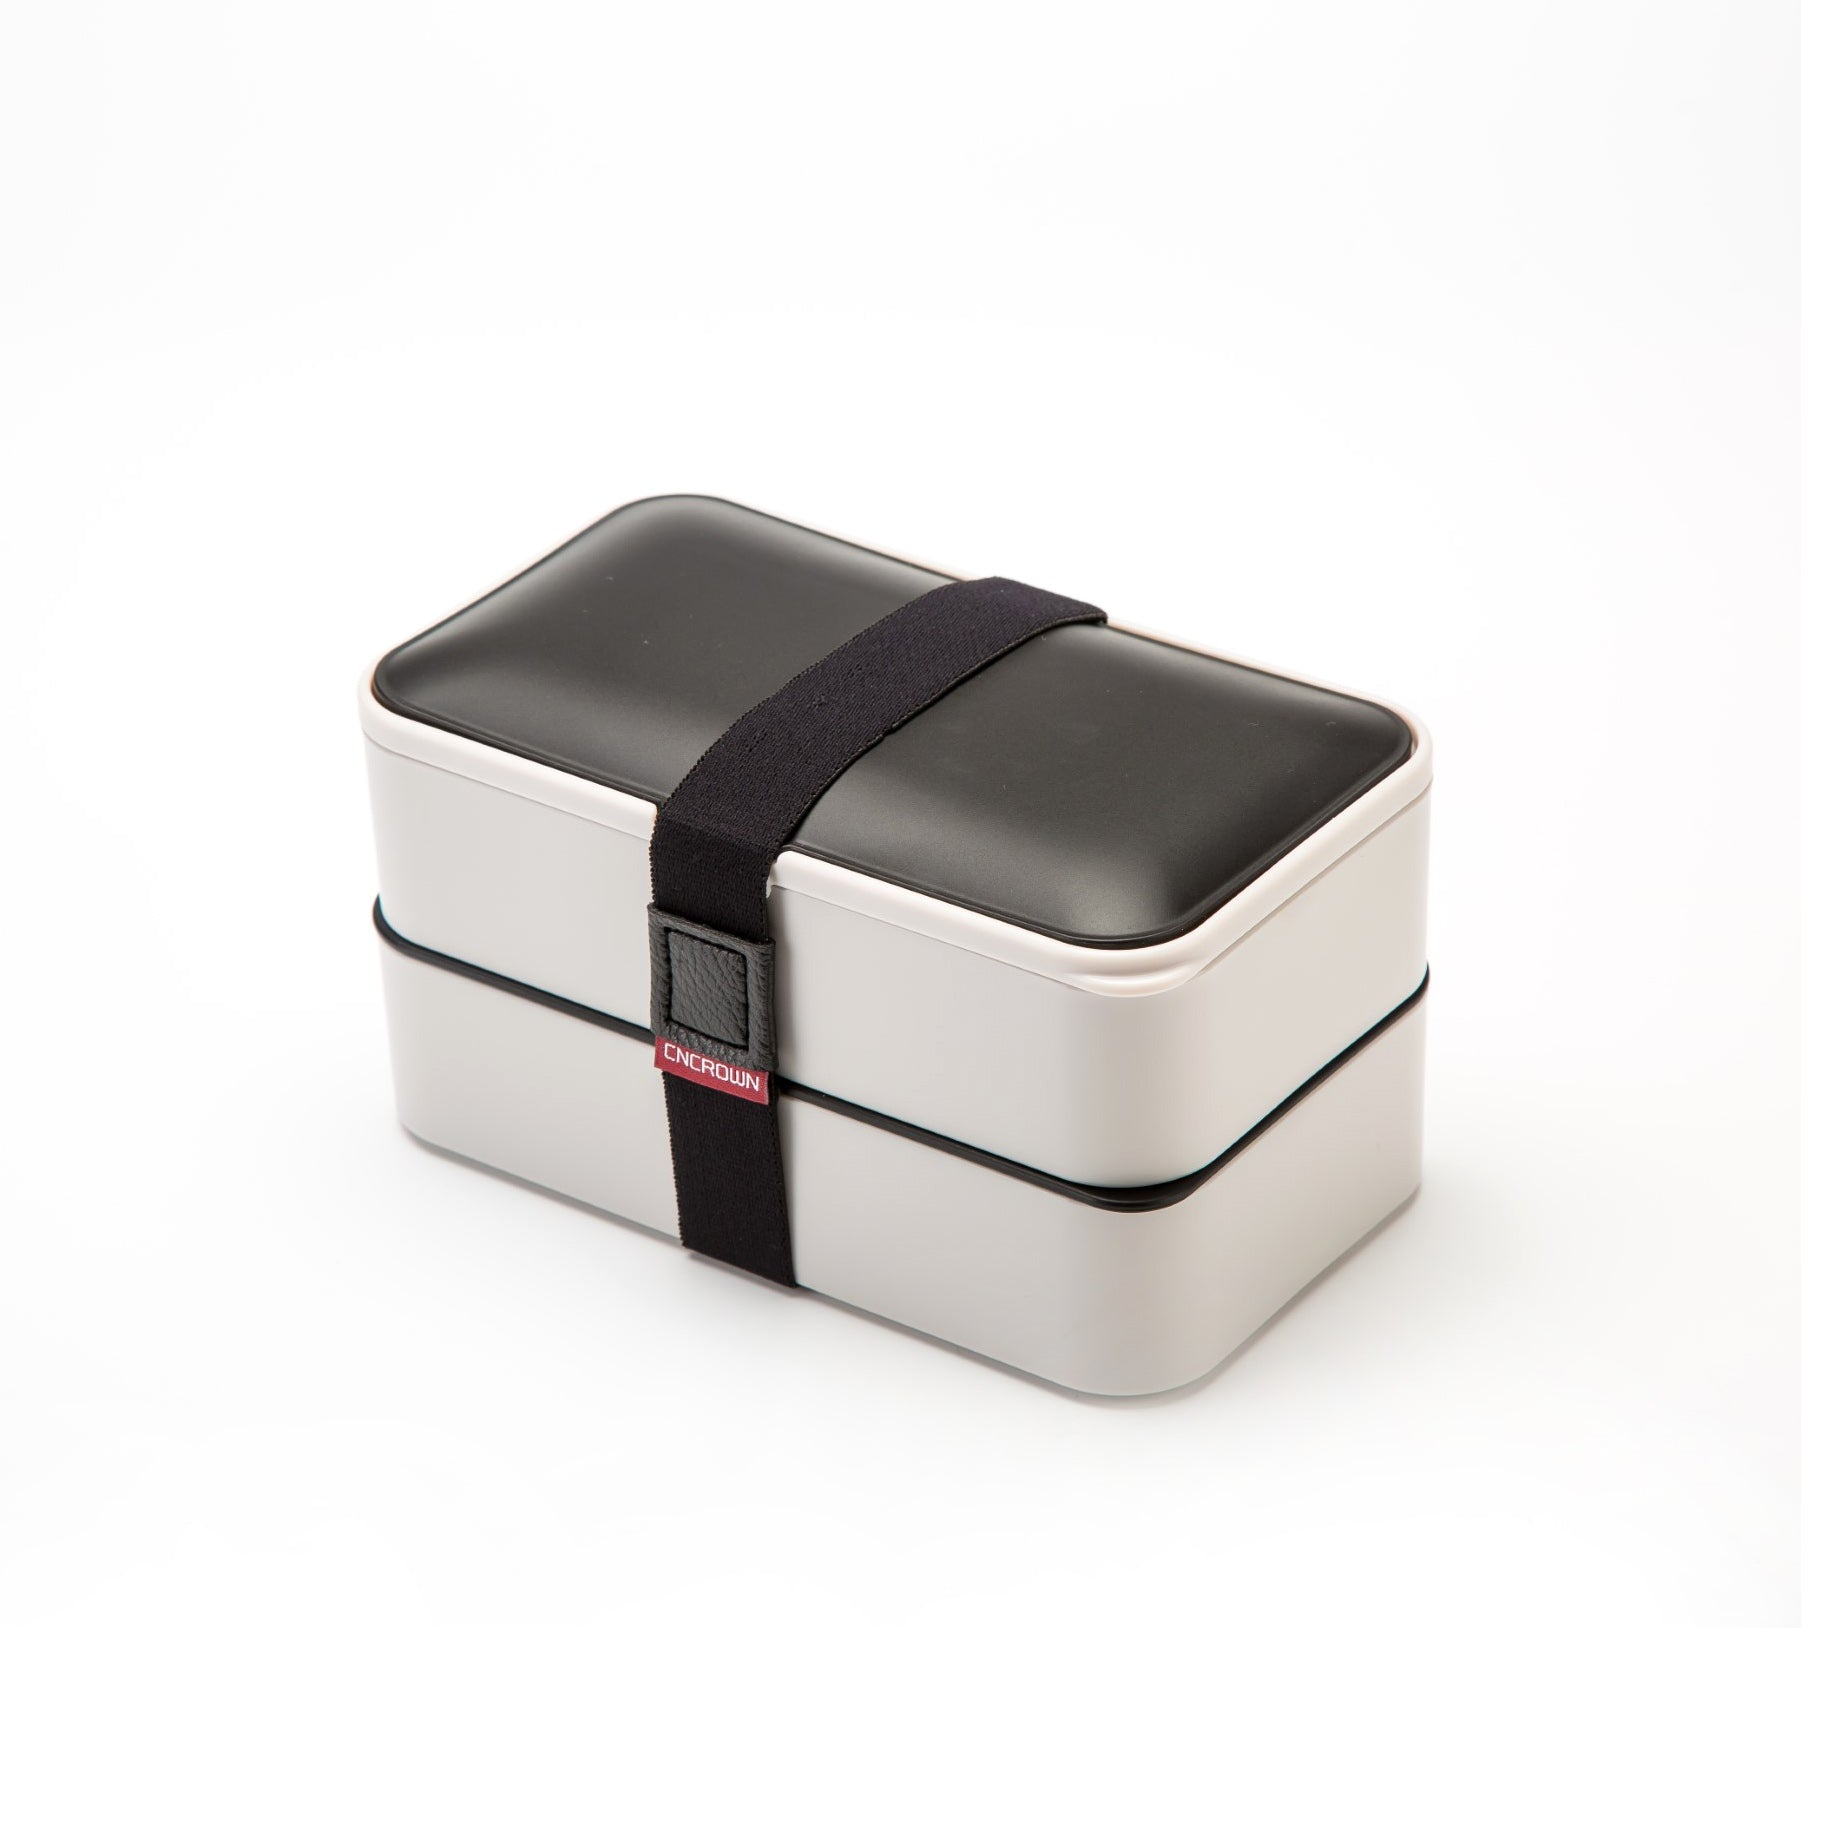 Royalford RF8711 2-layer Lunch Box with Insulated Bag